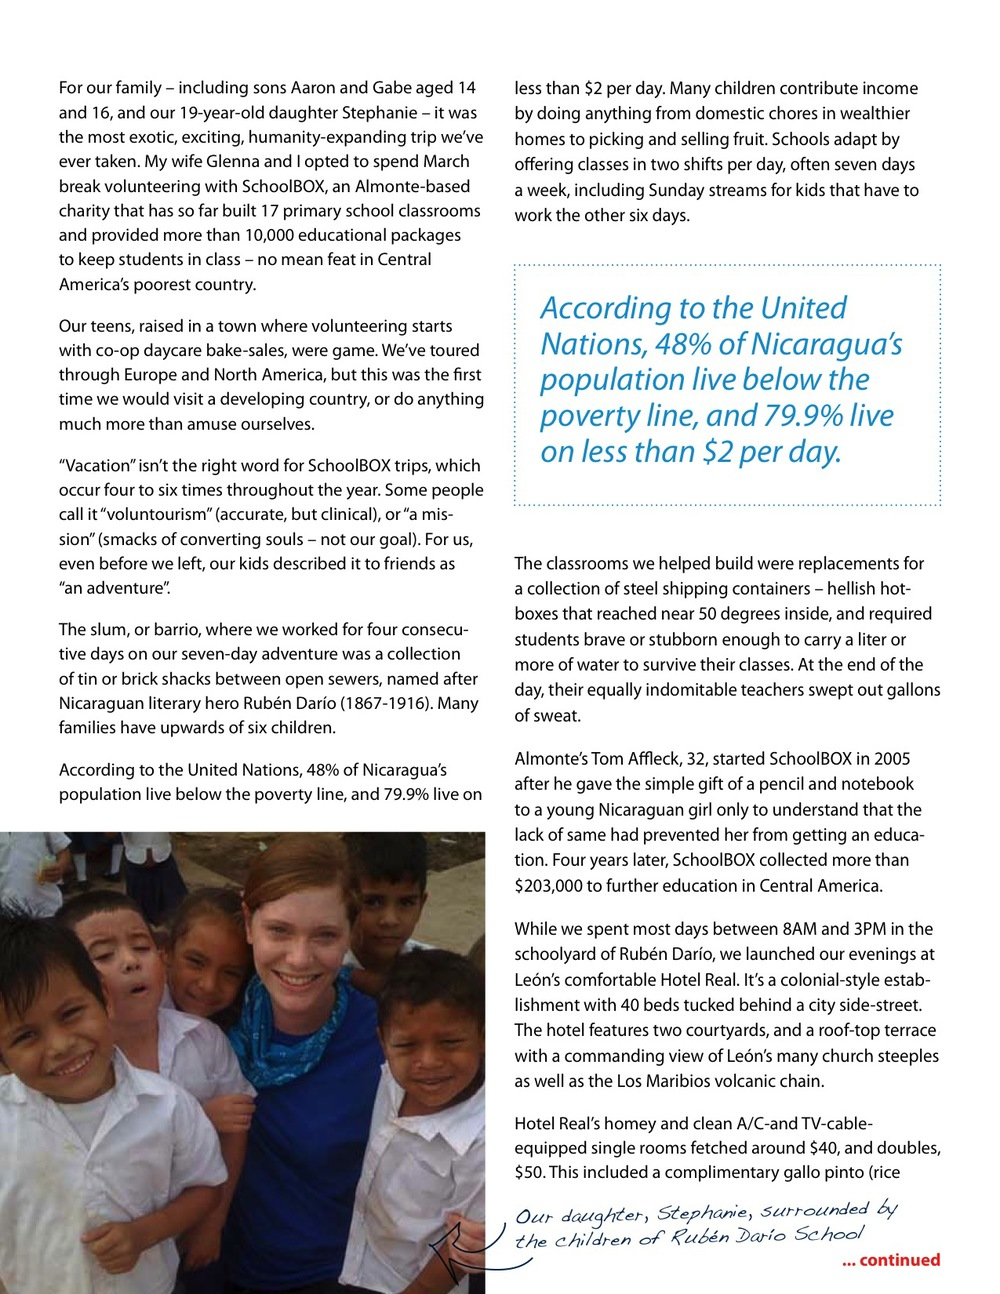 SchoolBOX_DayintheLife_VIEW-page2.jpg